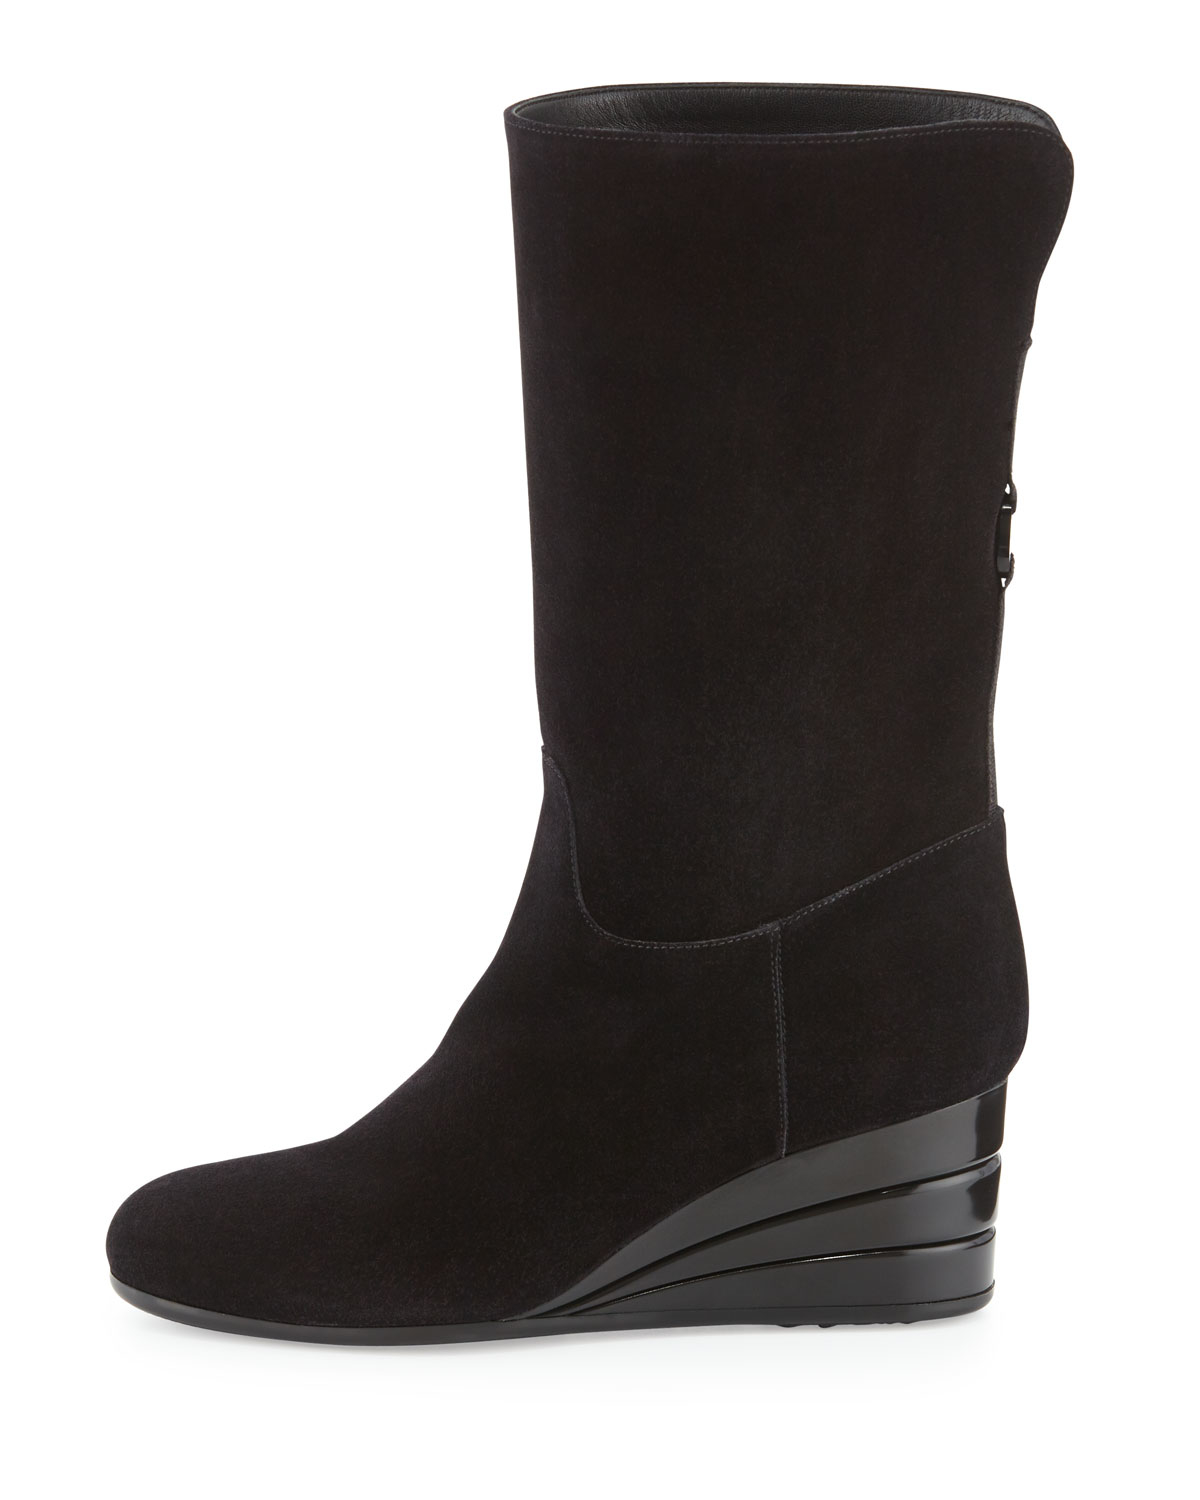 ferragamo my winter suede wedge boot in black lyst